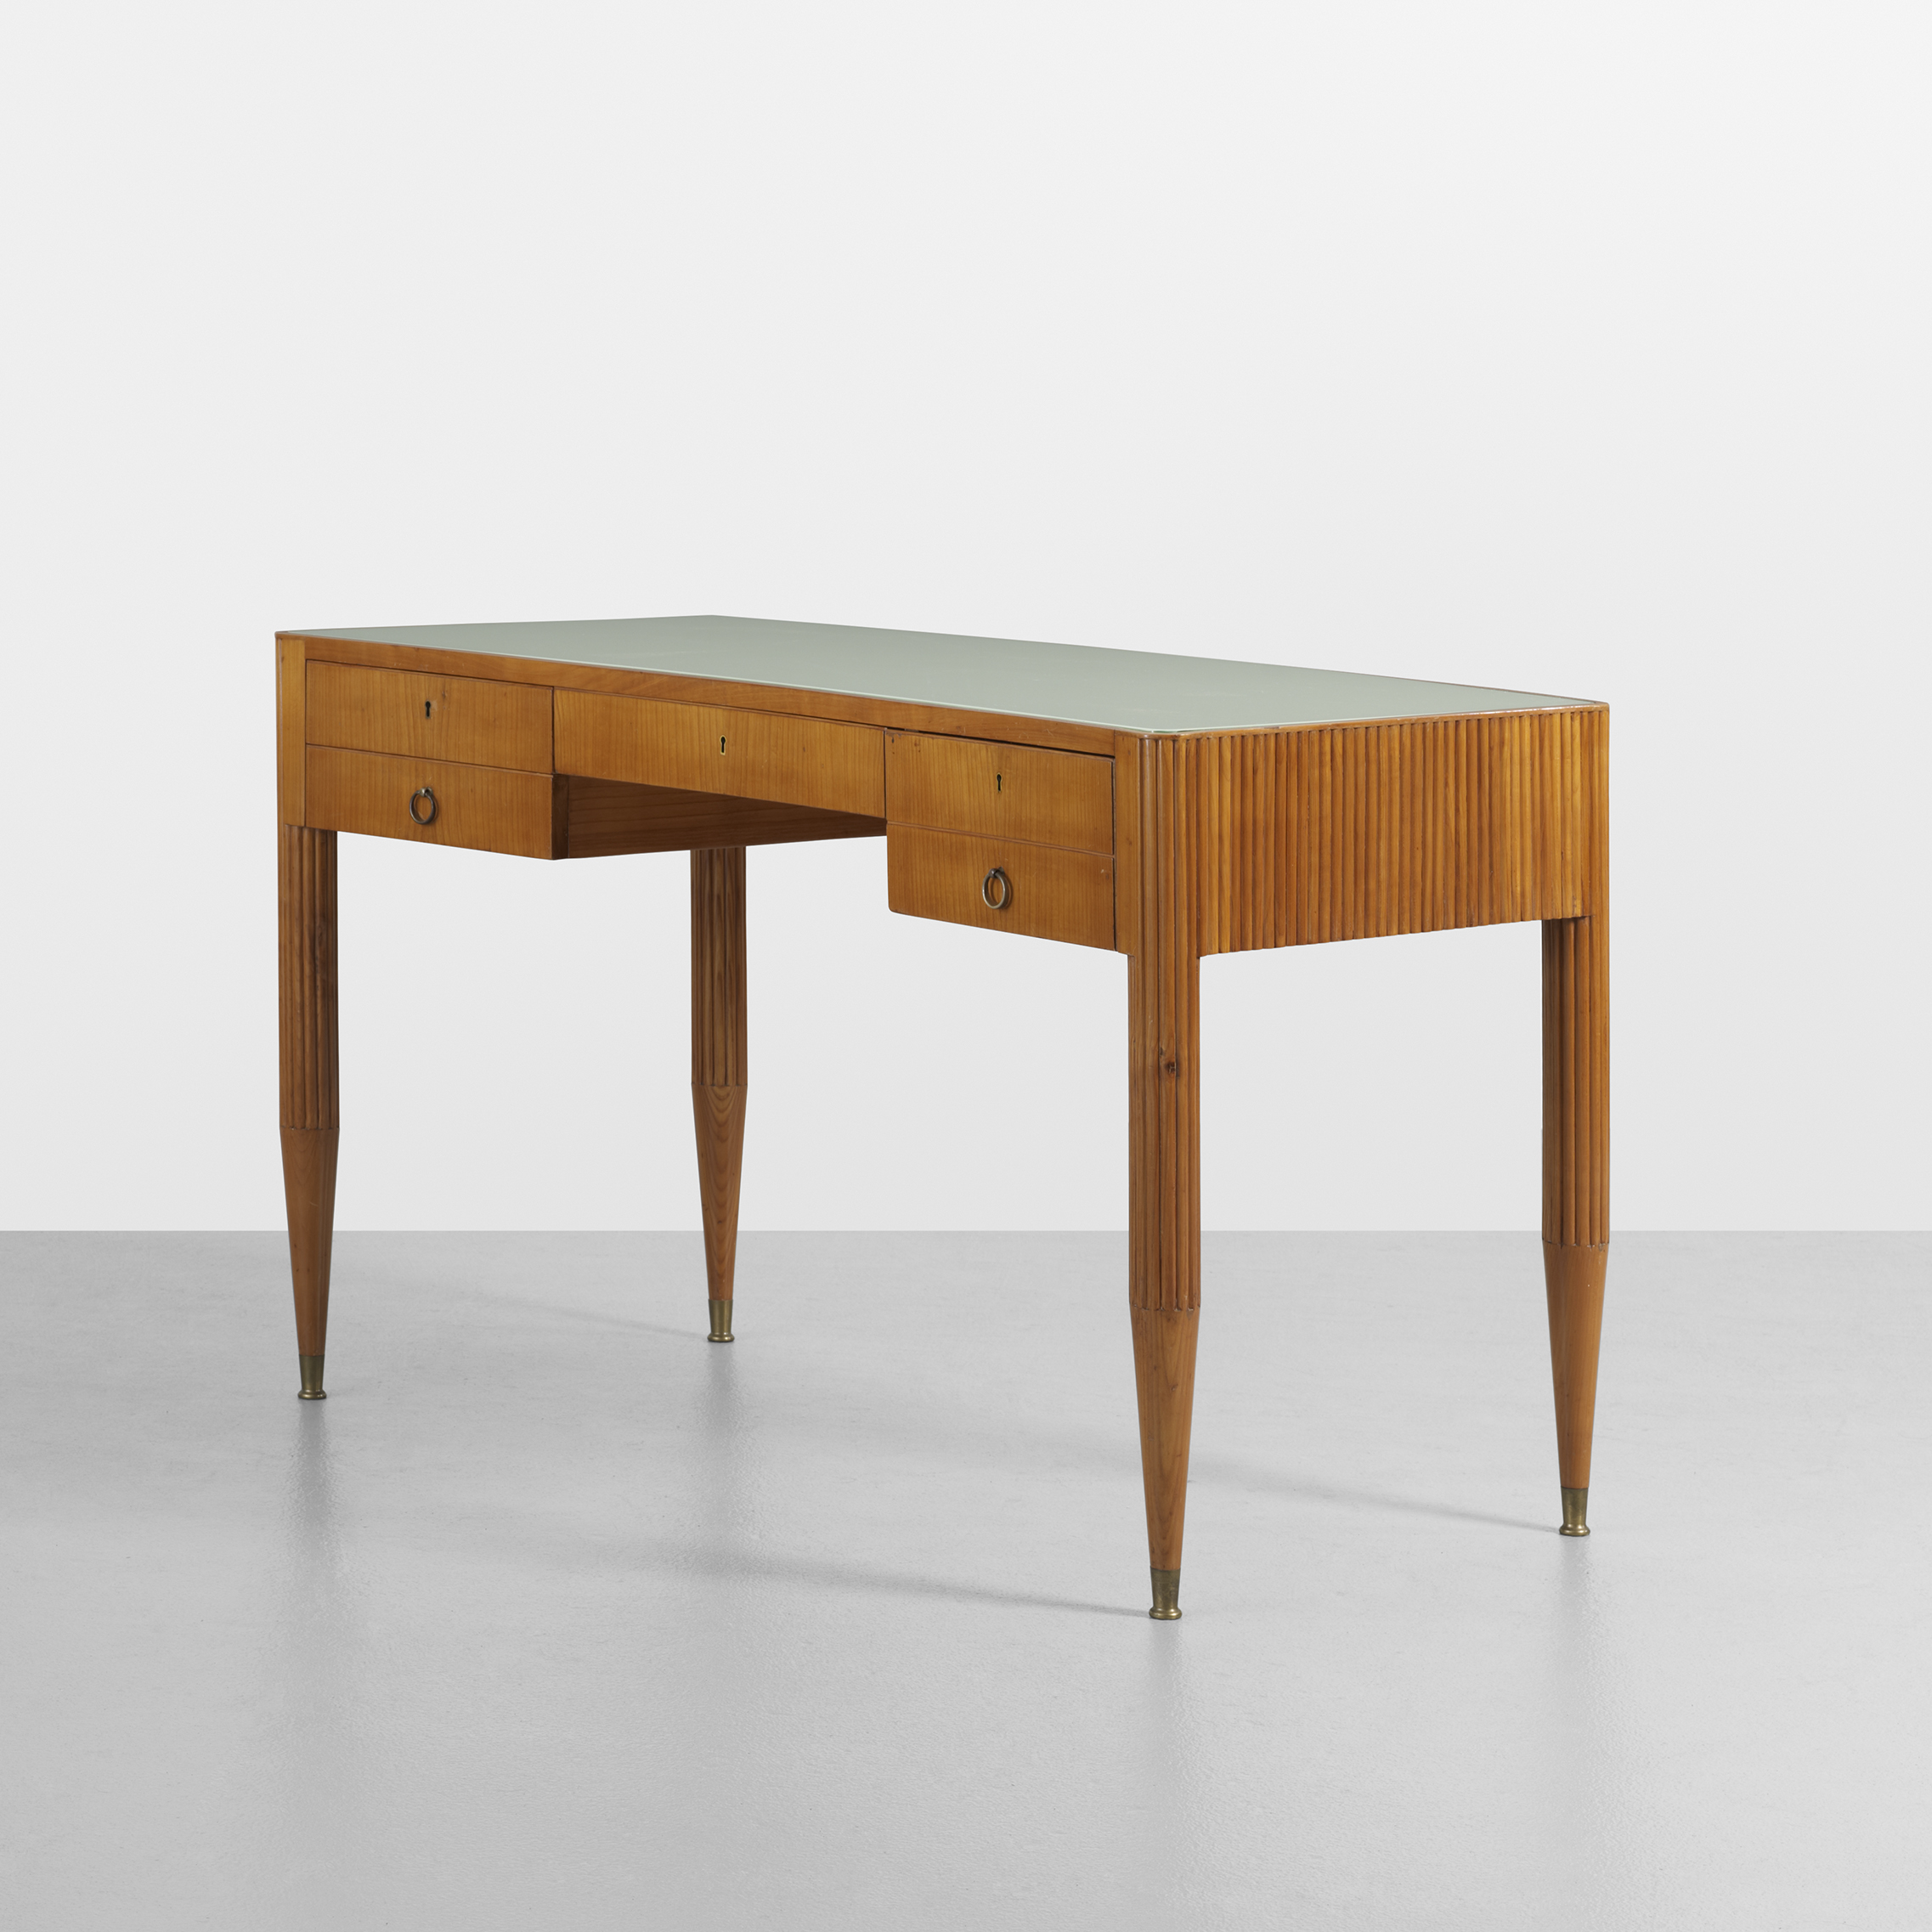 Giò Ponti (Italian, 1891–1979) Desk, 1938 Fruitwood, reverse-painted glass, and brass 31 x 53 x 26 1/2 inches Private collection